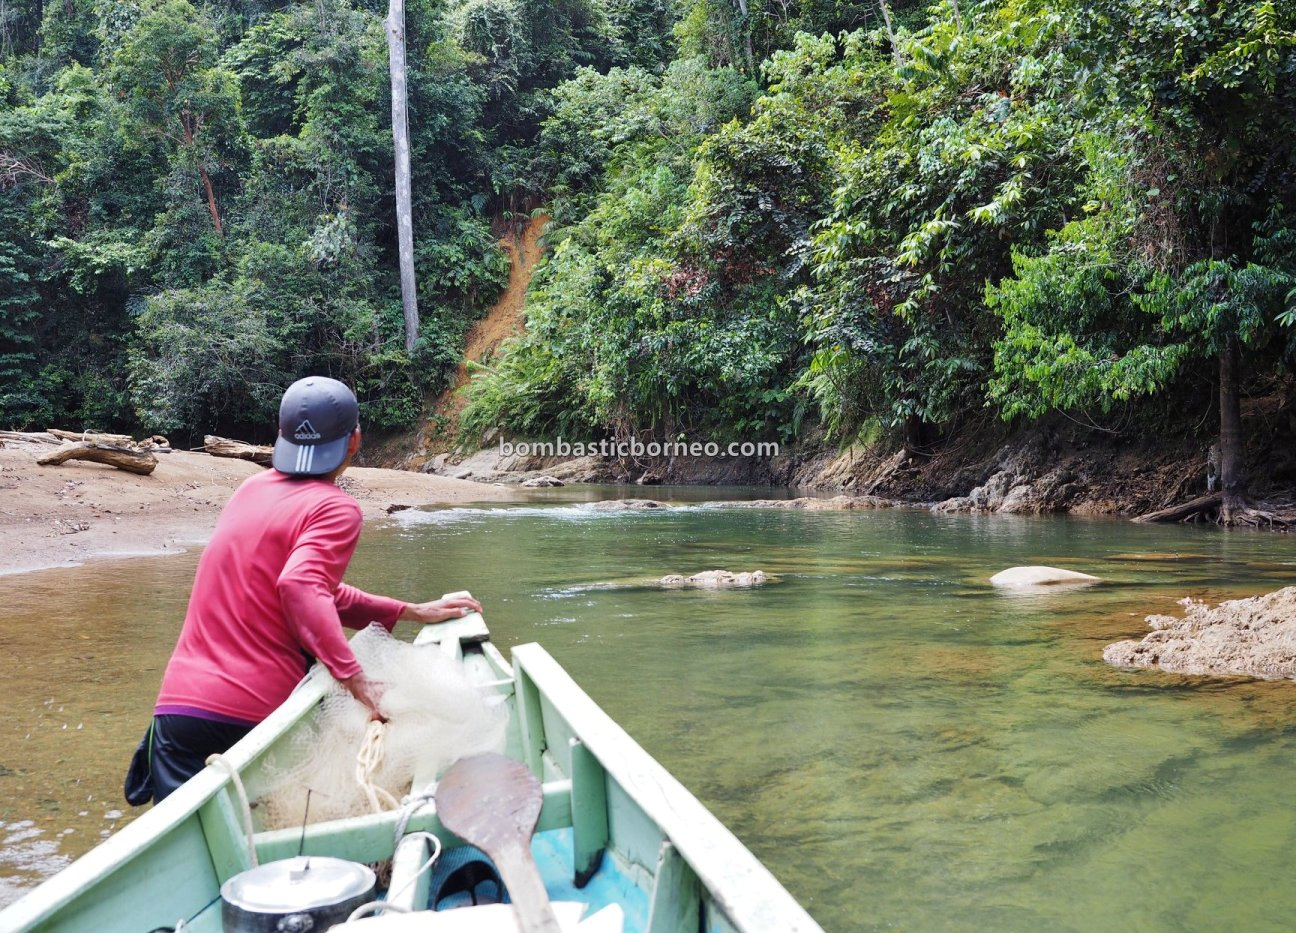 empangan, backpackers, destination, Ikan semah, traditional, fishing trip, memancing ikan, Kapit, Tourism, tourist attraction, travel guide, Trans Borneo, 婆罗洲旅游景点, 砂拉越峇贡水坝, 马来西亚钓鱼之旅,